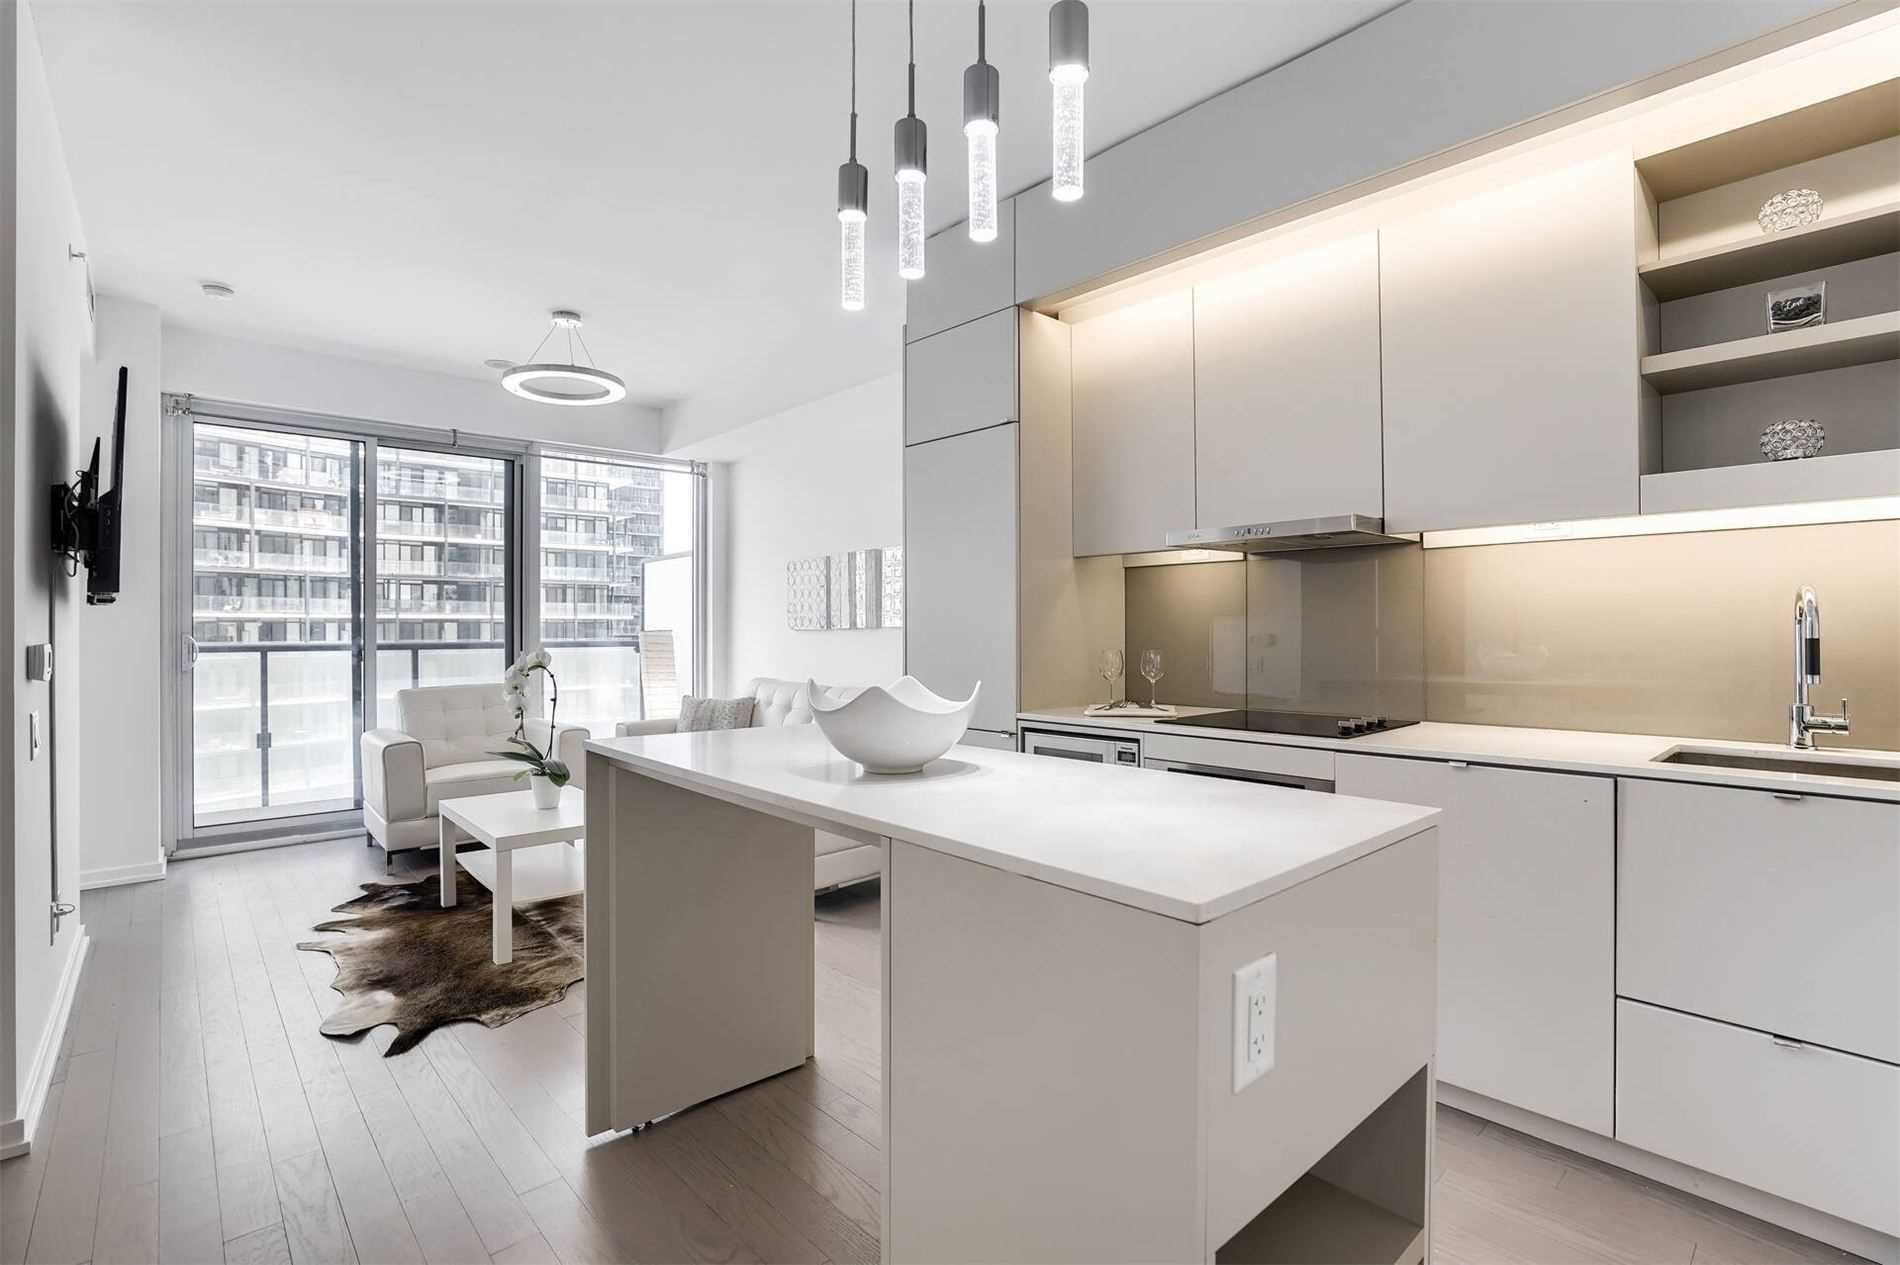 101 Peter St, unit 1912 for sale in Toronto - image #2